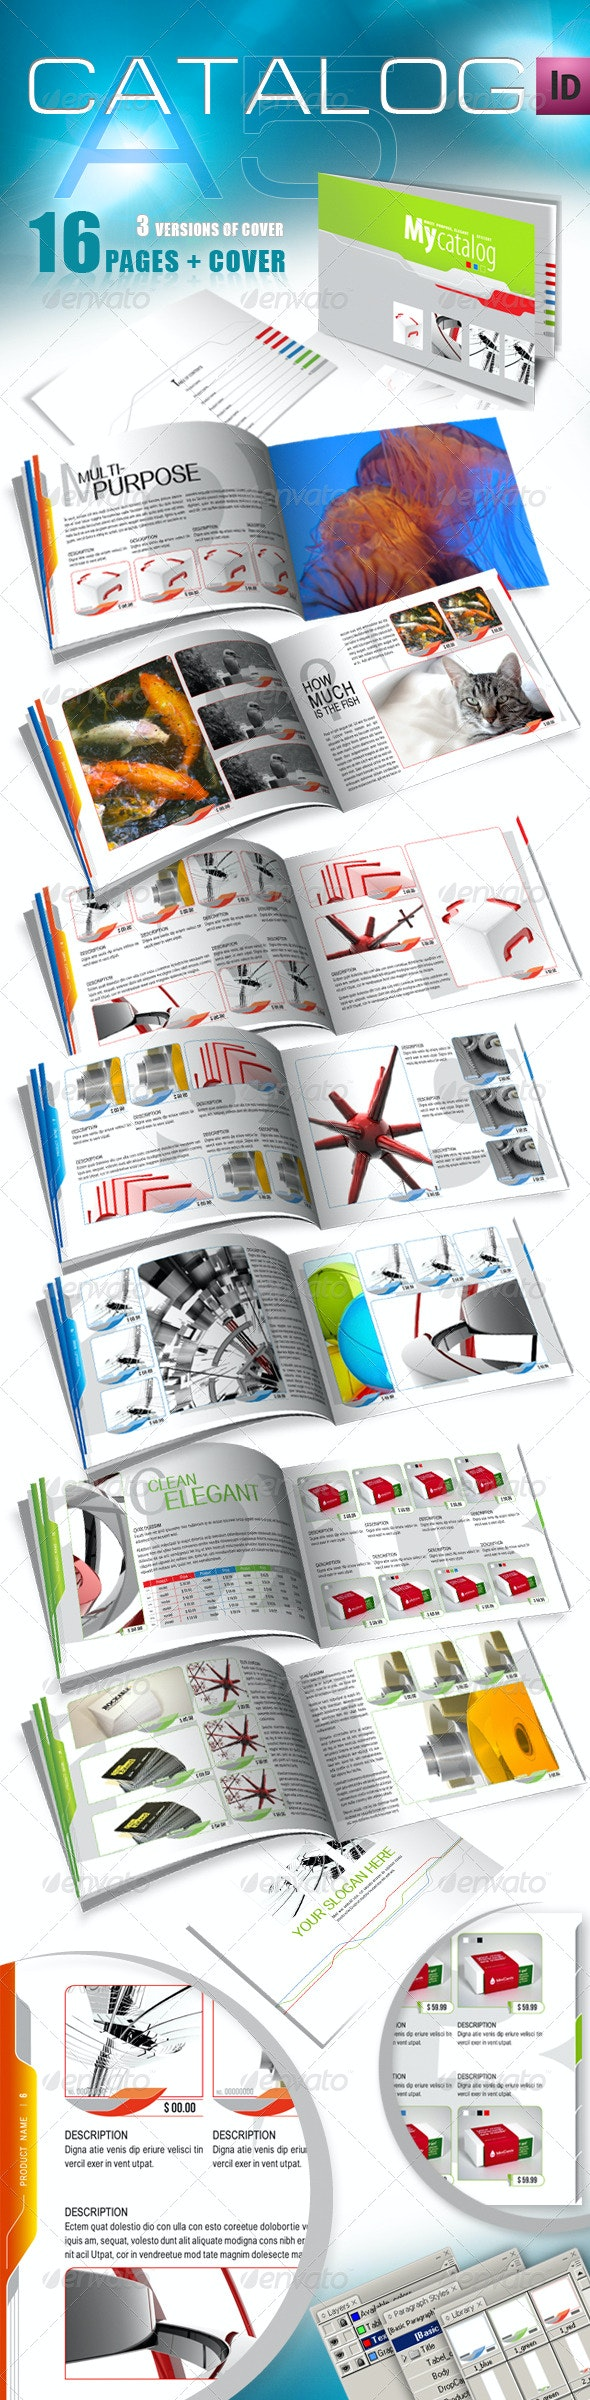 A5 Catalog for Multiple Purposes - Catalogs Brochures